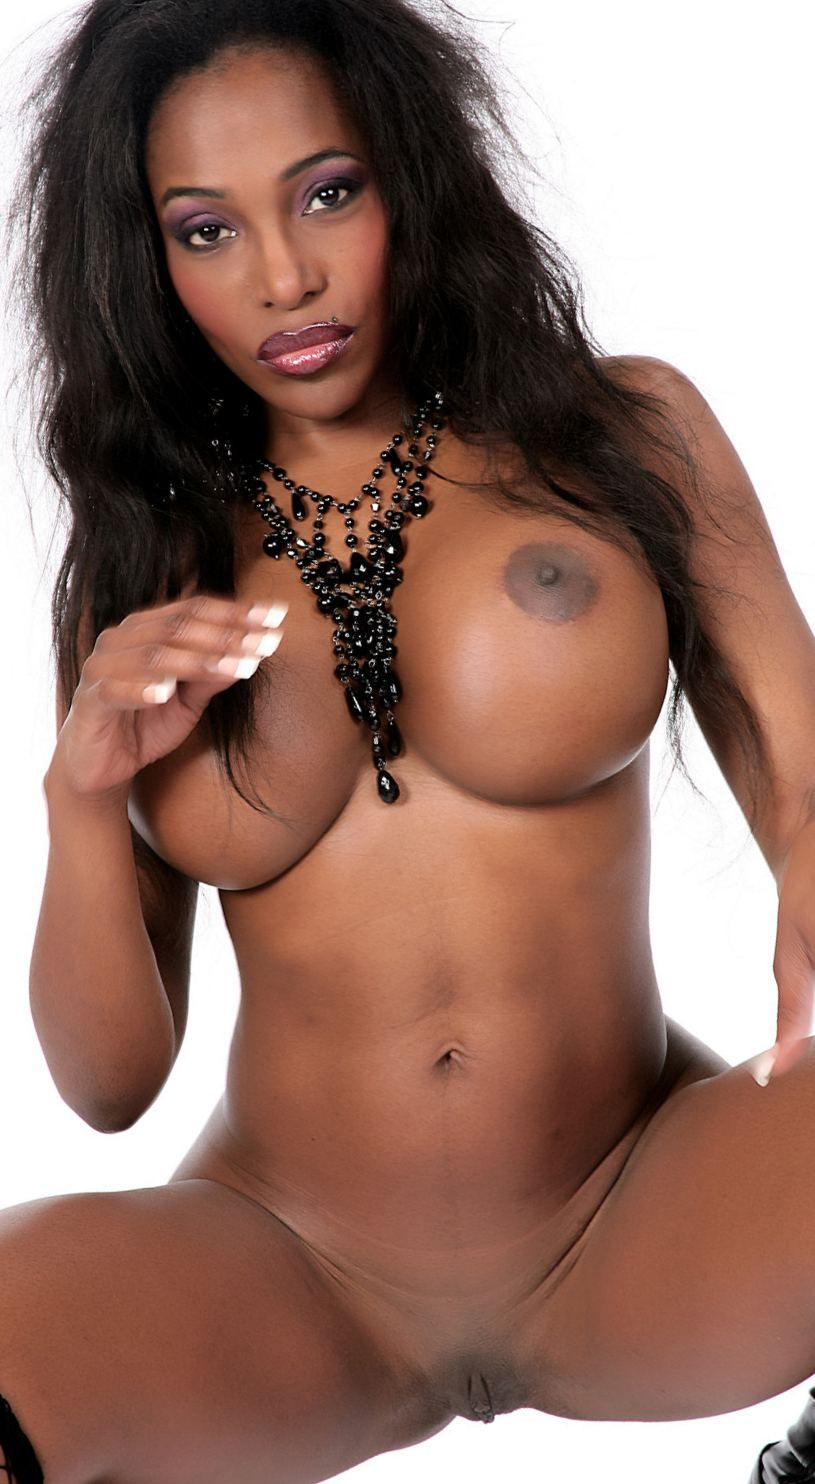 slave-video-naked-busty-latina-ebony-girls-help-video-tube